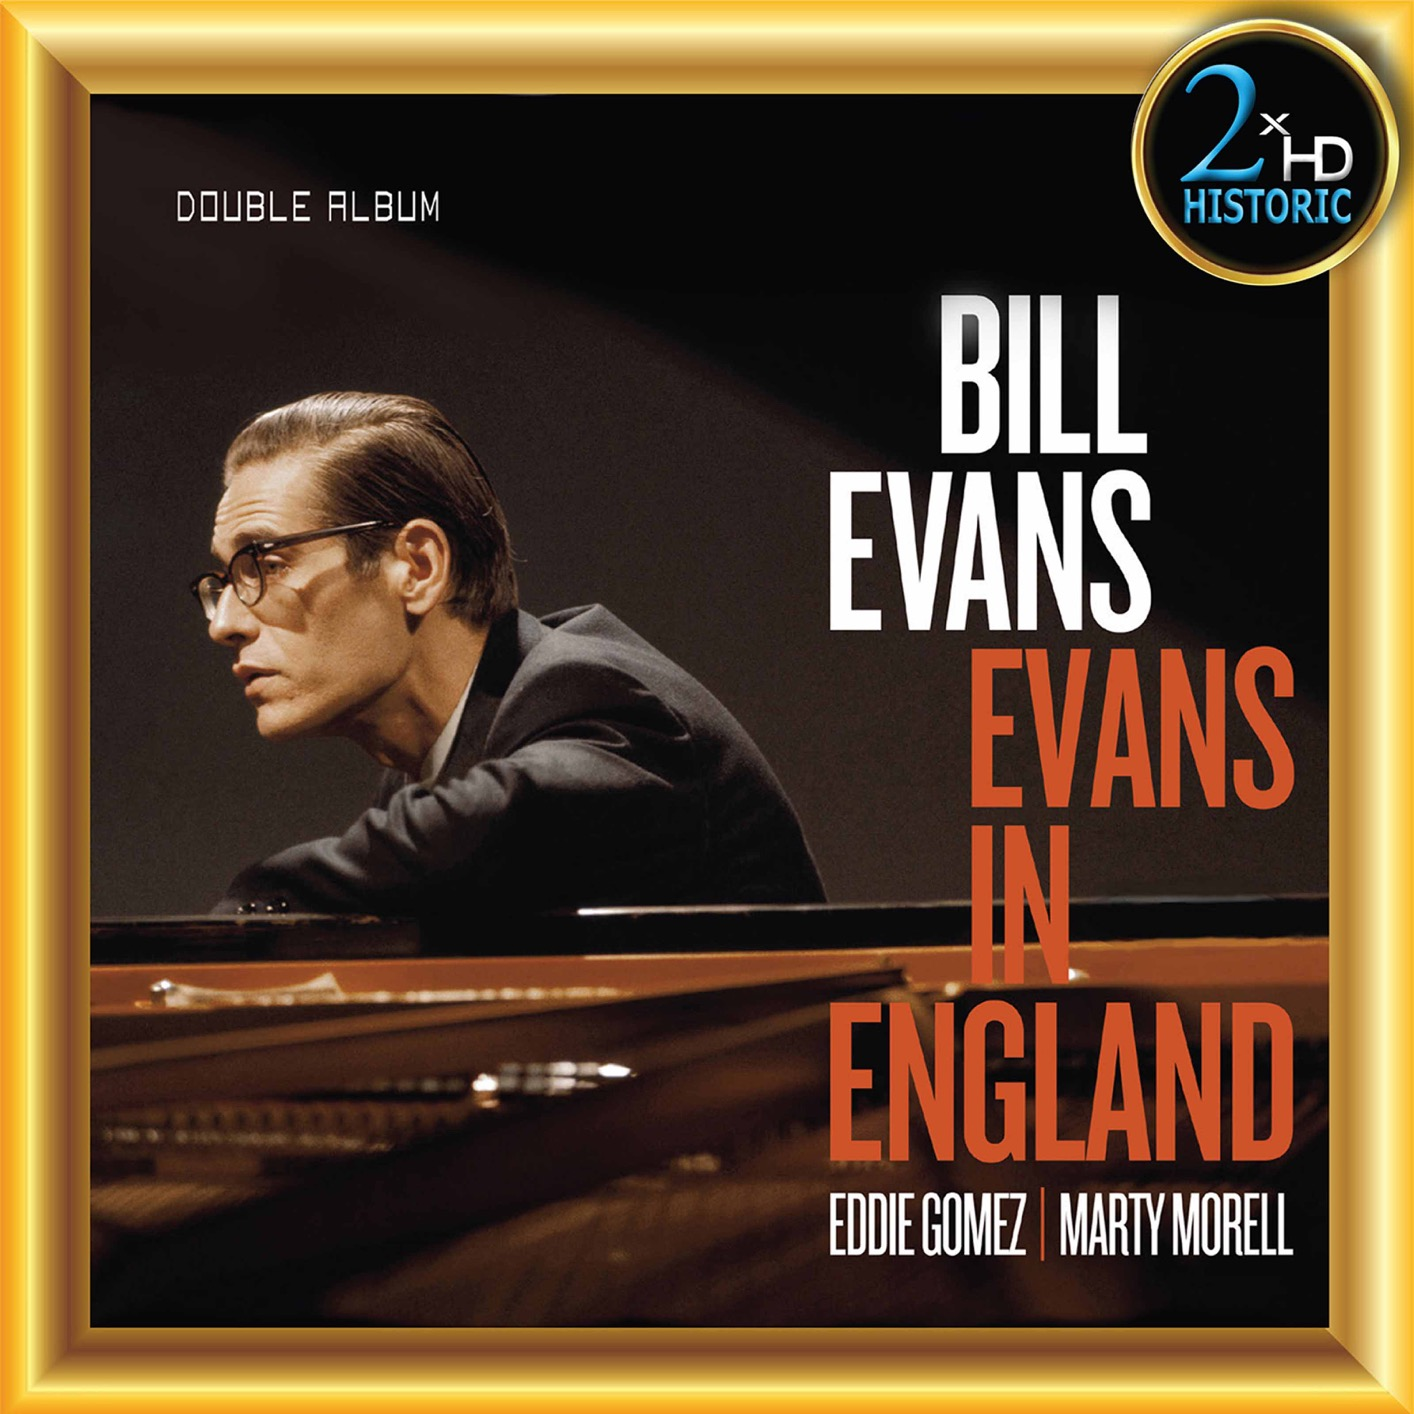 [TR24][OF] Bill Evans, Eddy Gomez, Marty Morell - Evans in England (Remastered)- 2019 (Jazz)